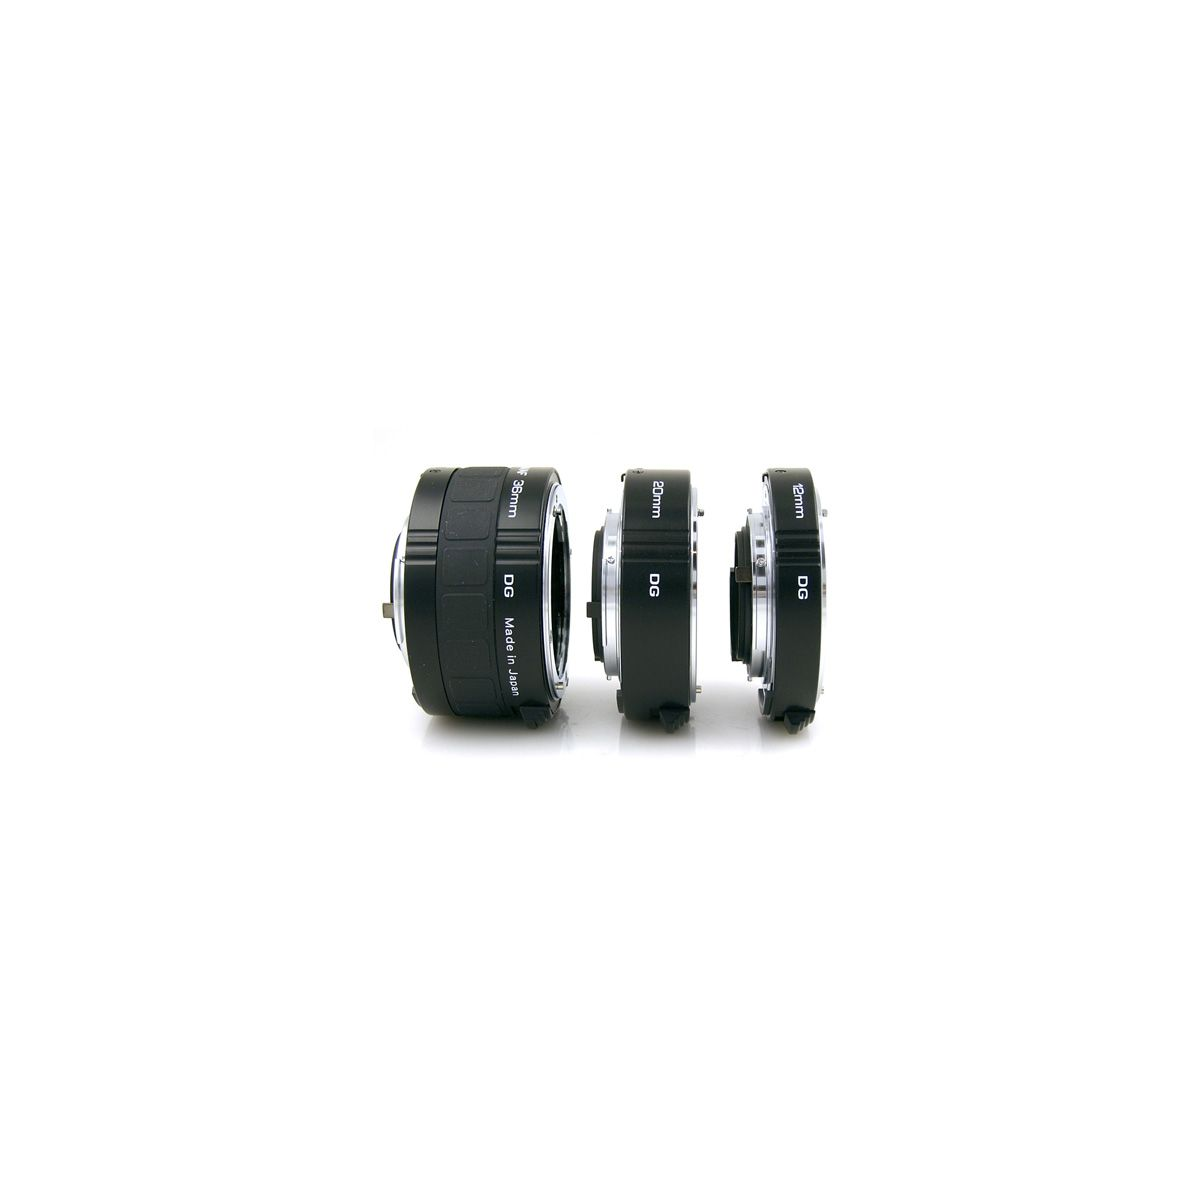 Bague kenko kit tubes allonges dg canon (photo)